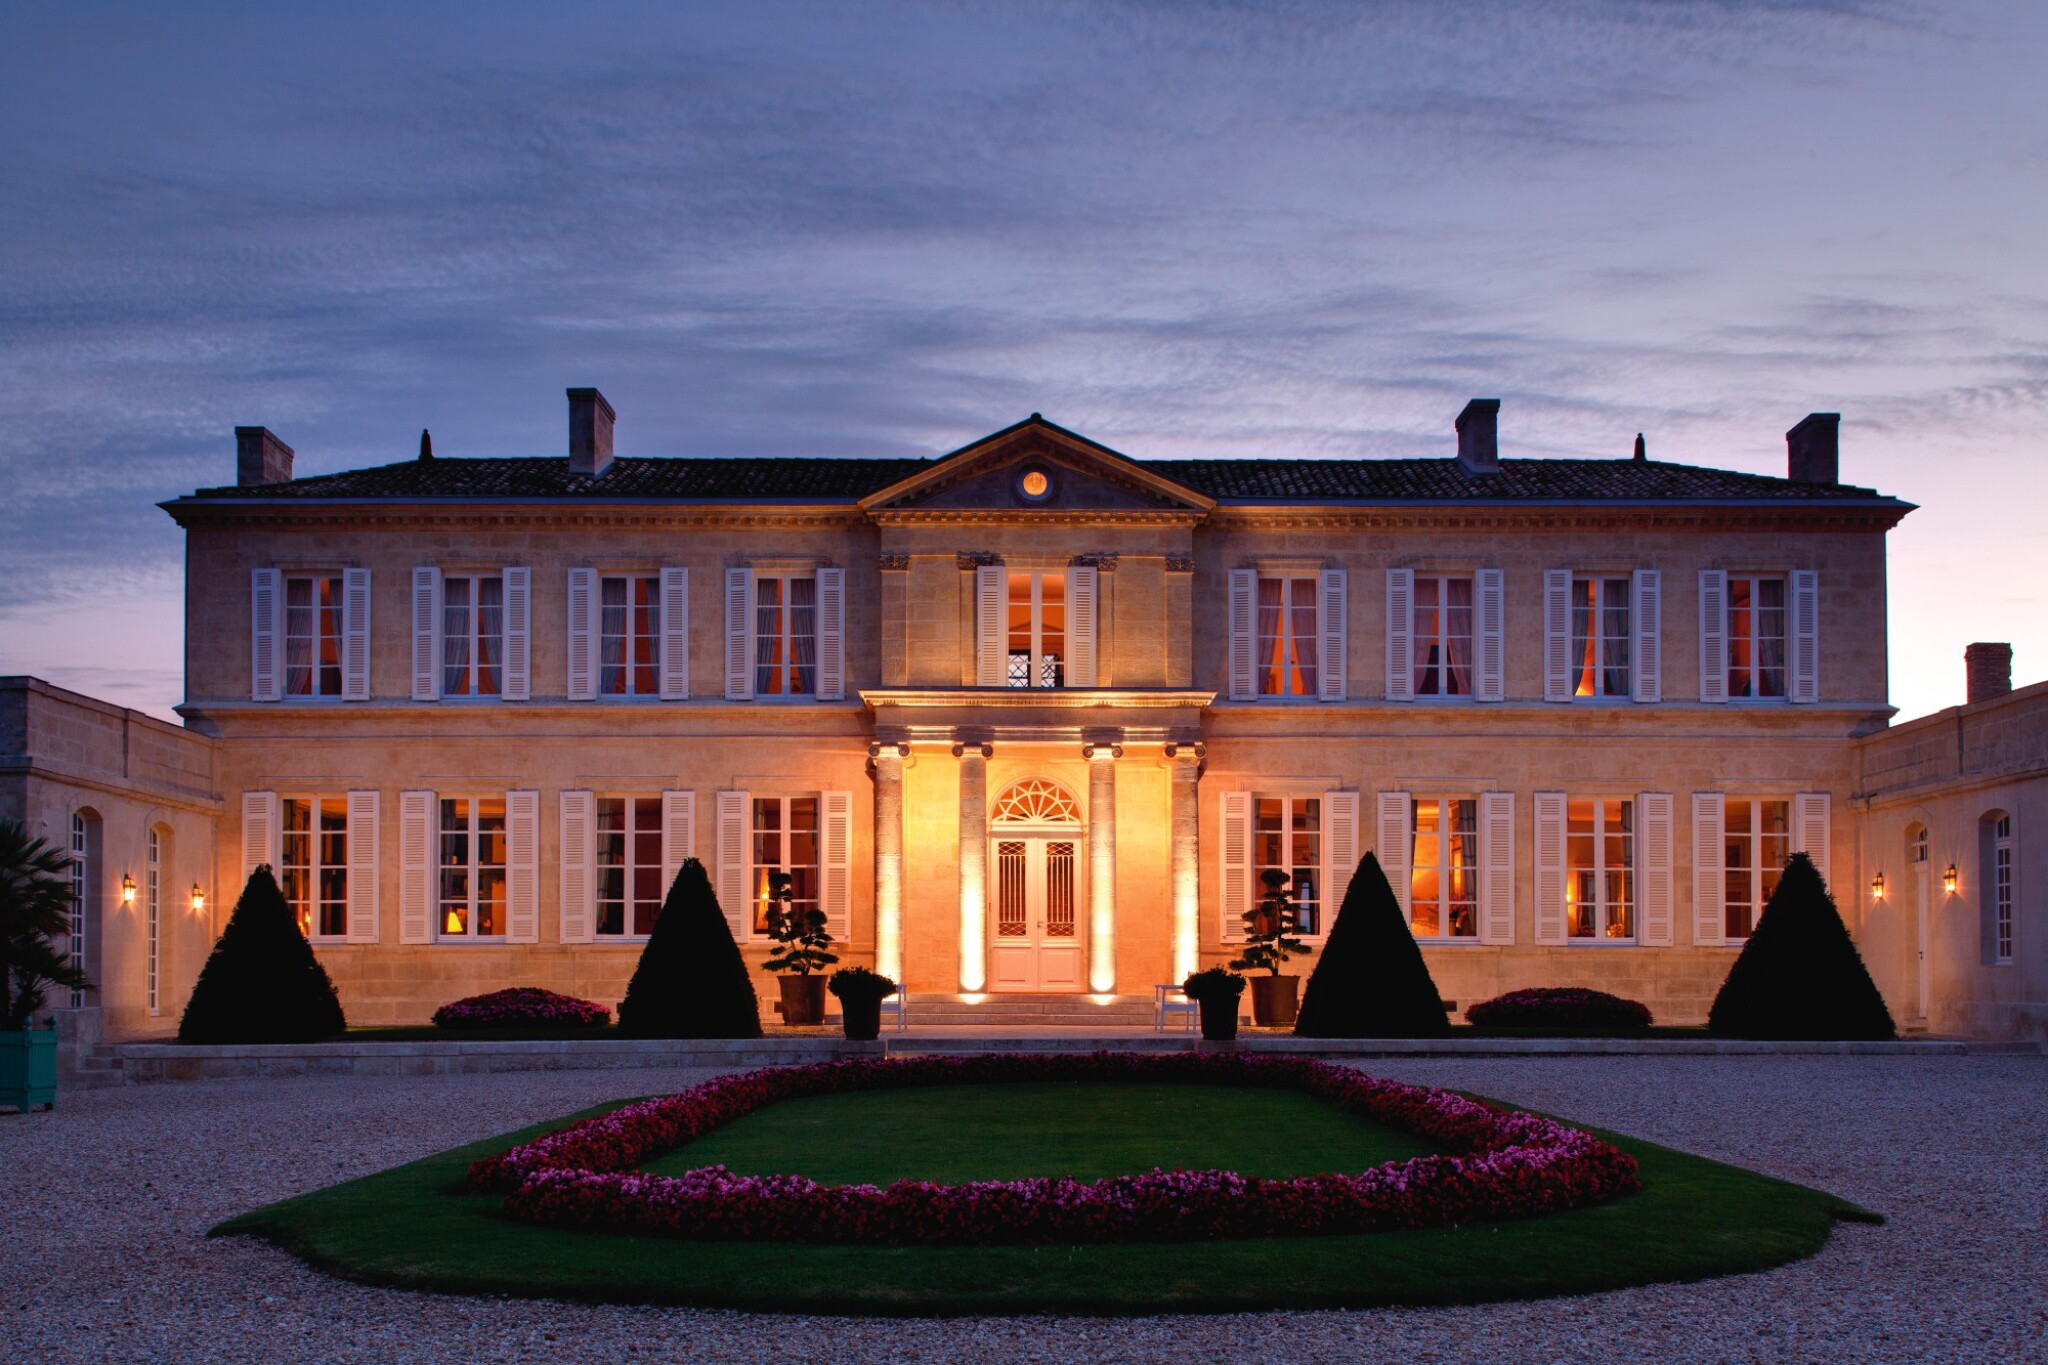 BRANAIRE DUCRU WINE & STAY: 1 X 5 LITRE BRANAIRE DUCRU 1989, WITH TASTING, DINNER & OVERNIGHT STAY AT THE CHÂTEAU